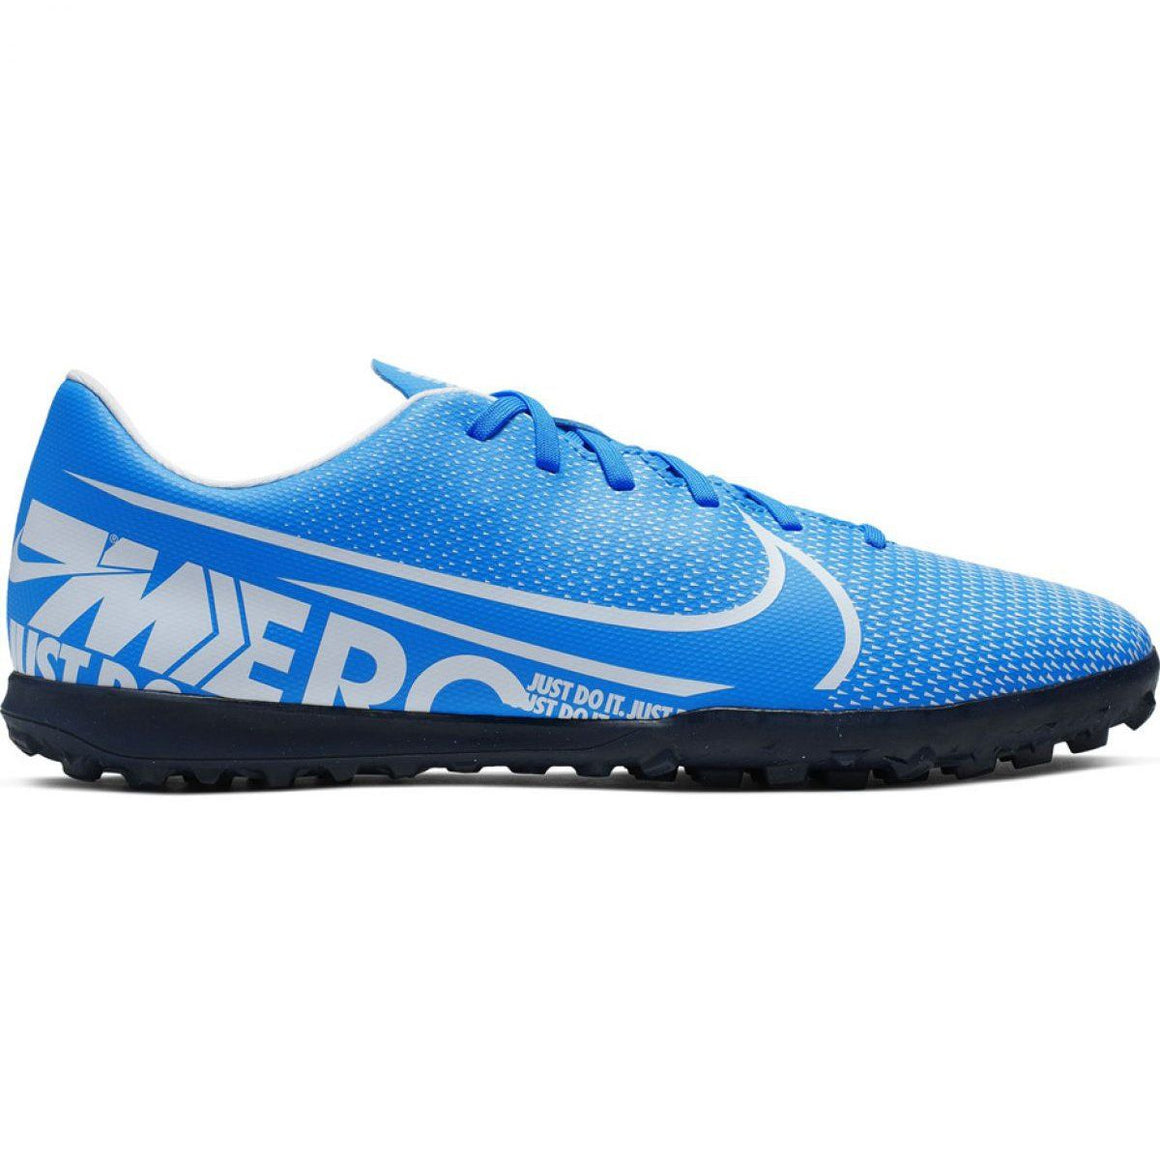 Mercurial Vapor 13 Club TF Football Shoes for Men in Blue & White